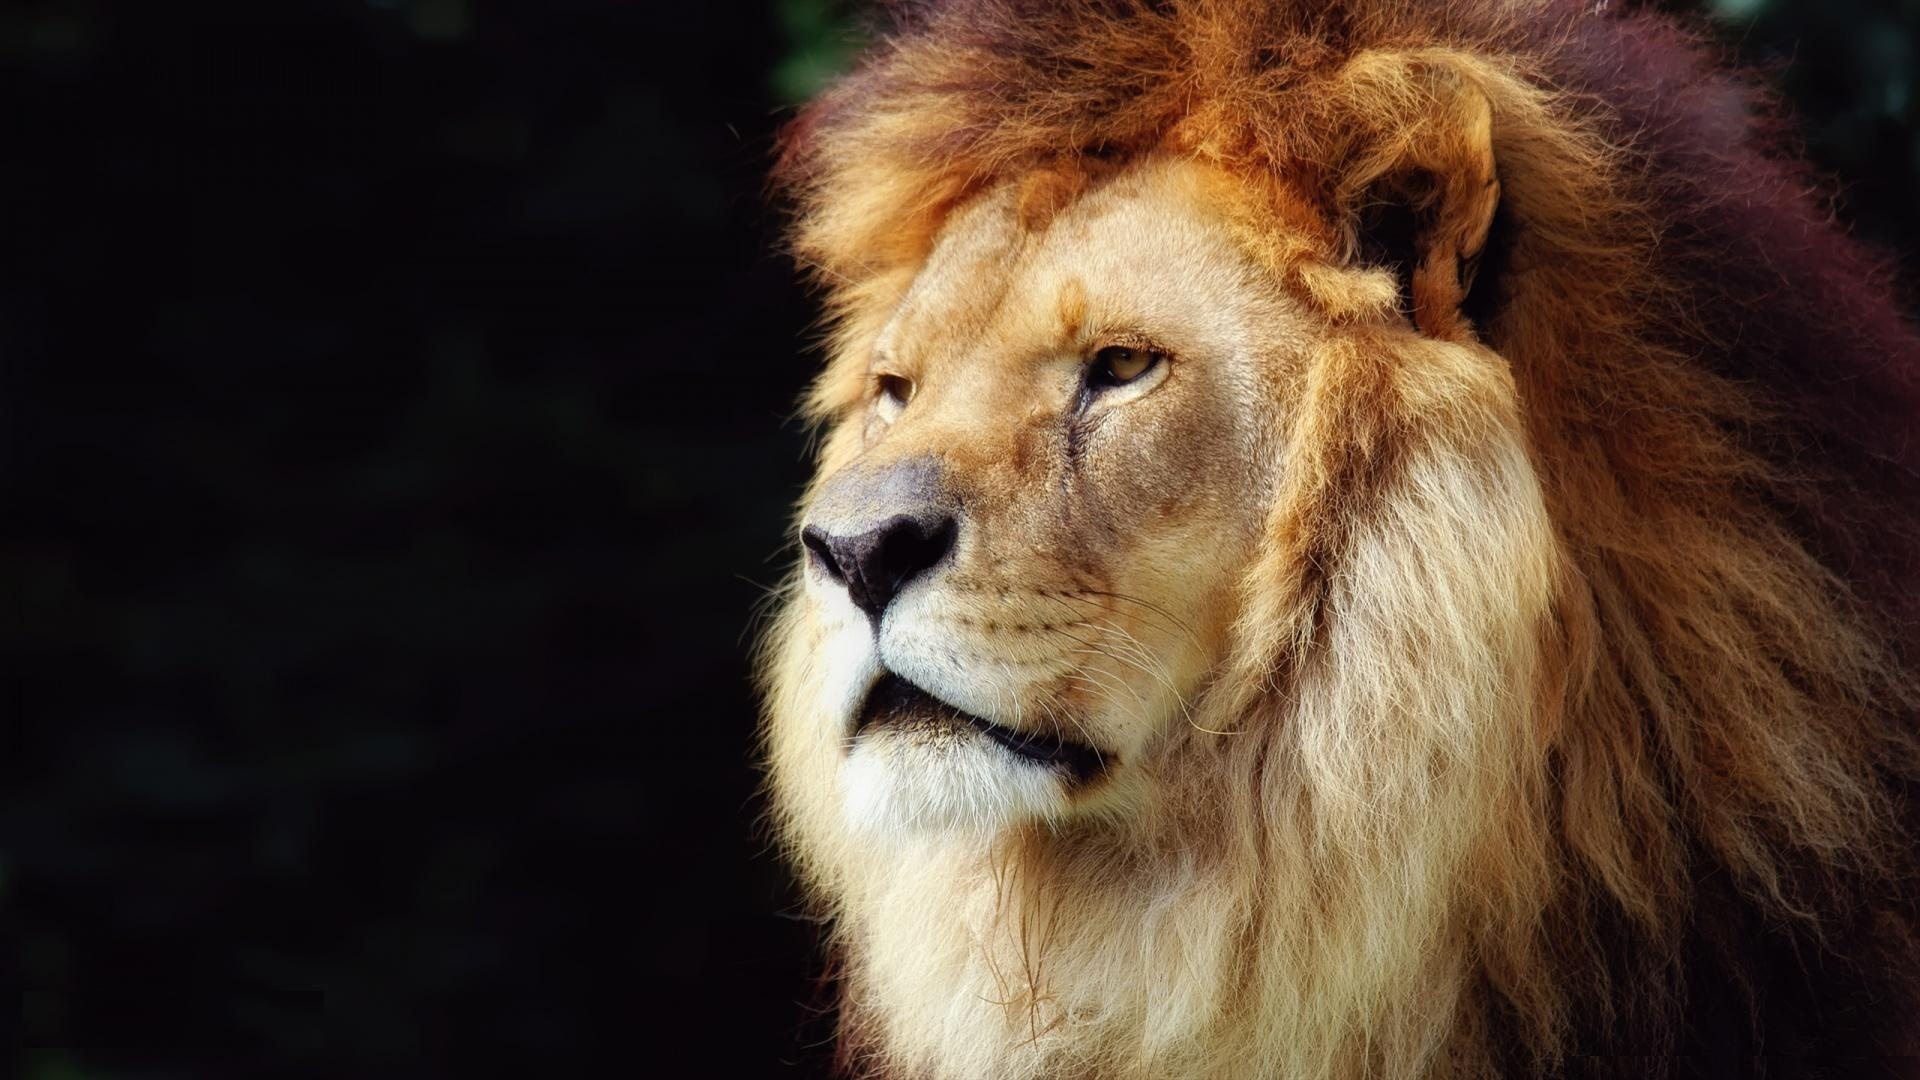 Big Lion Head | 1920 x 1080 ...